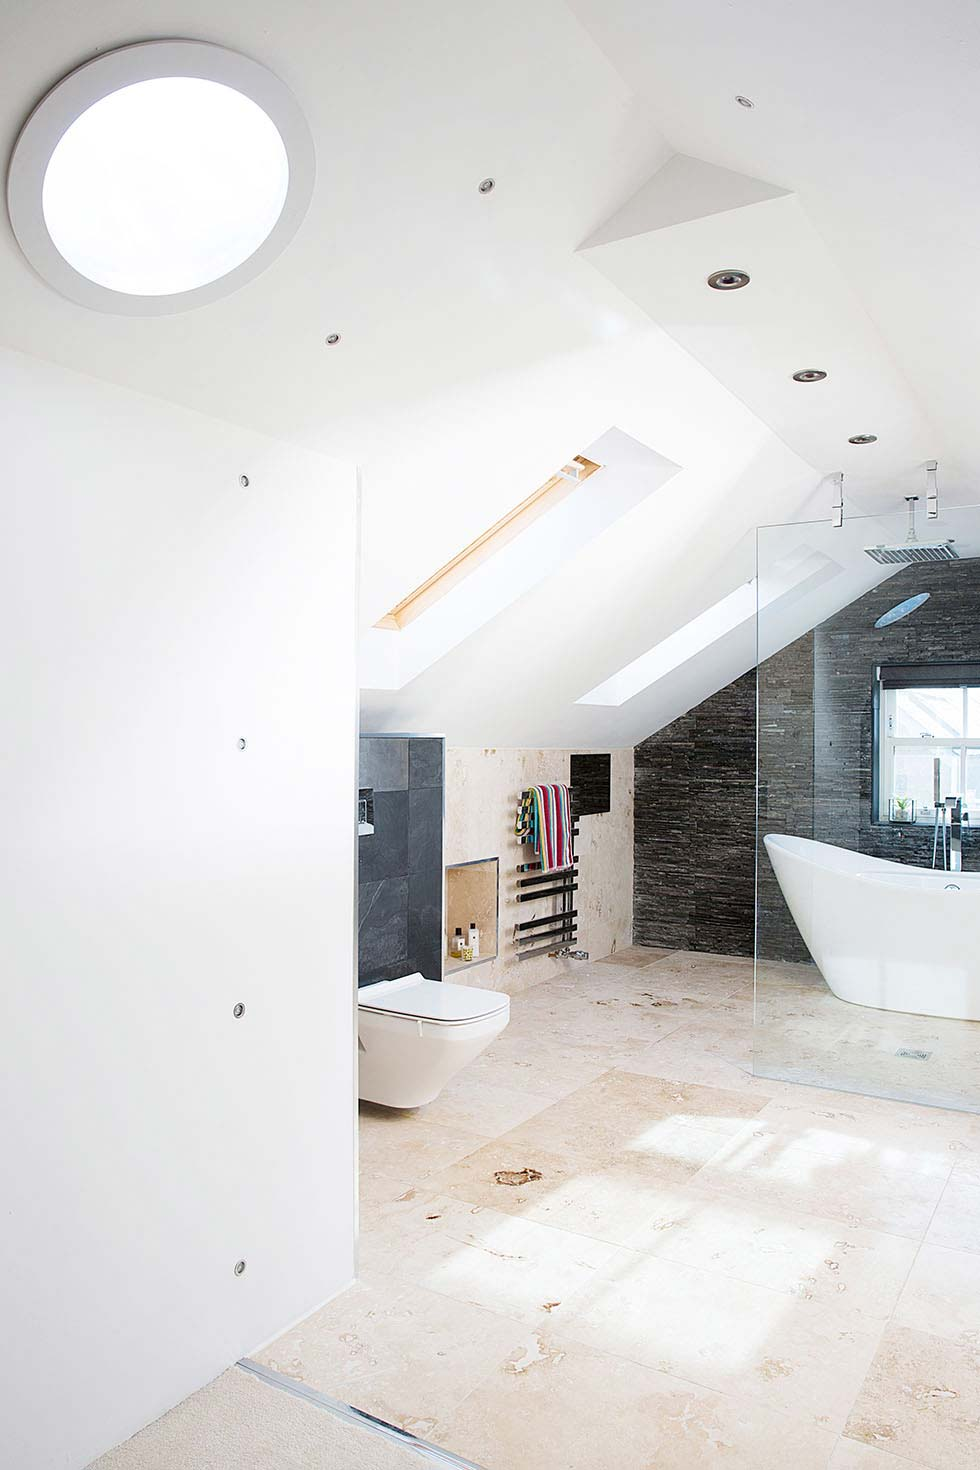 open-plan en-suite bathroom in a loft conversion